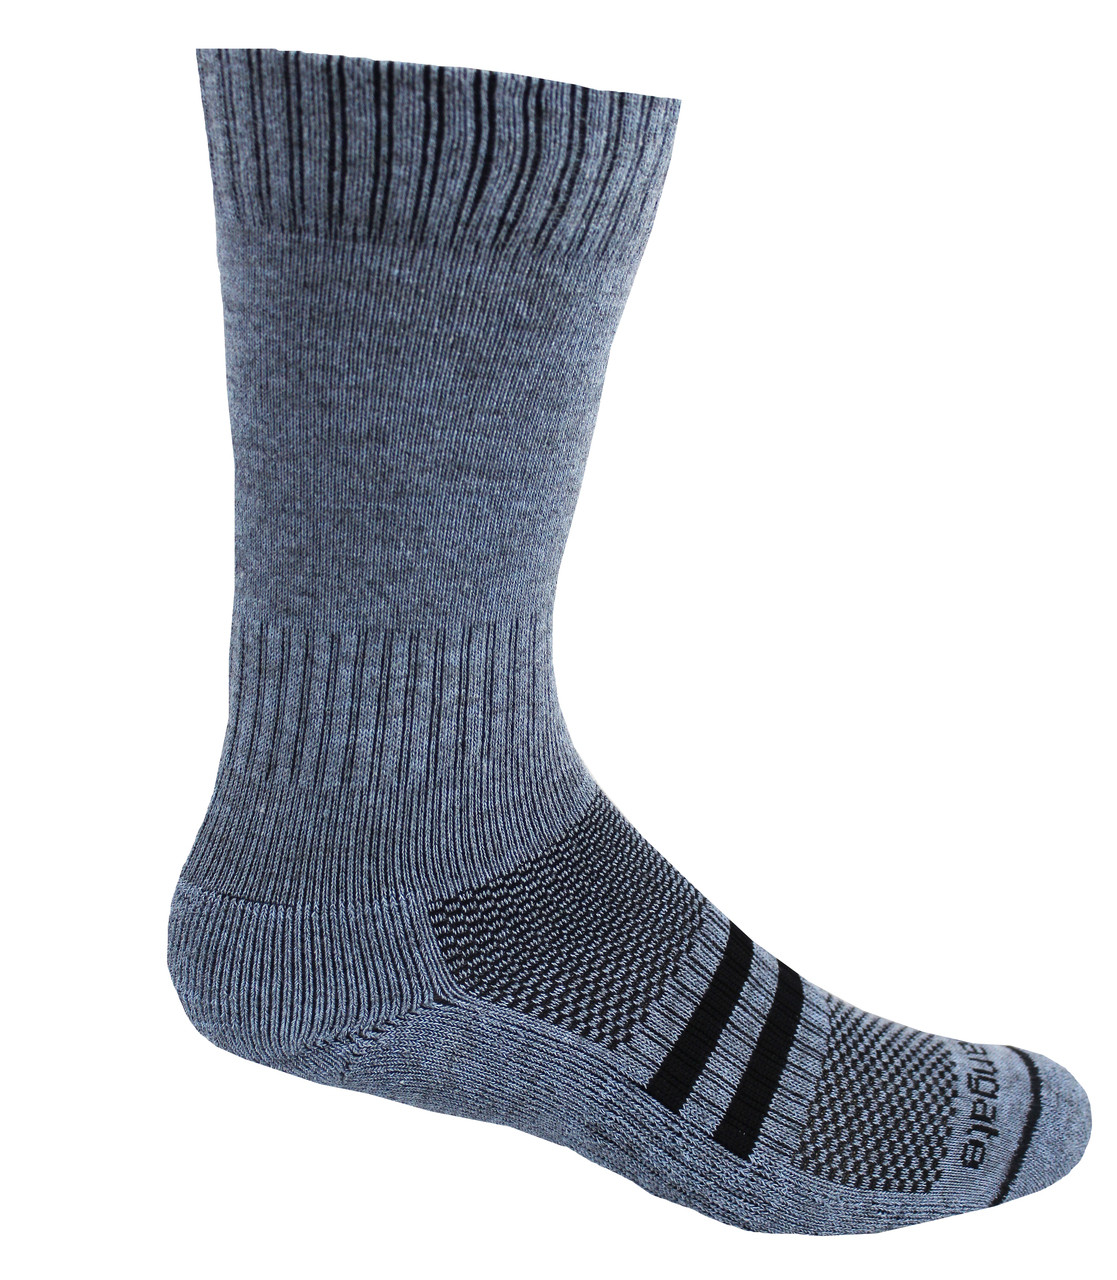 Our mid-calf hiking socks feature compression bands at the ankle and instep which insure a great fit.